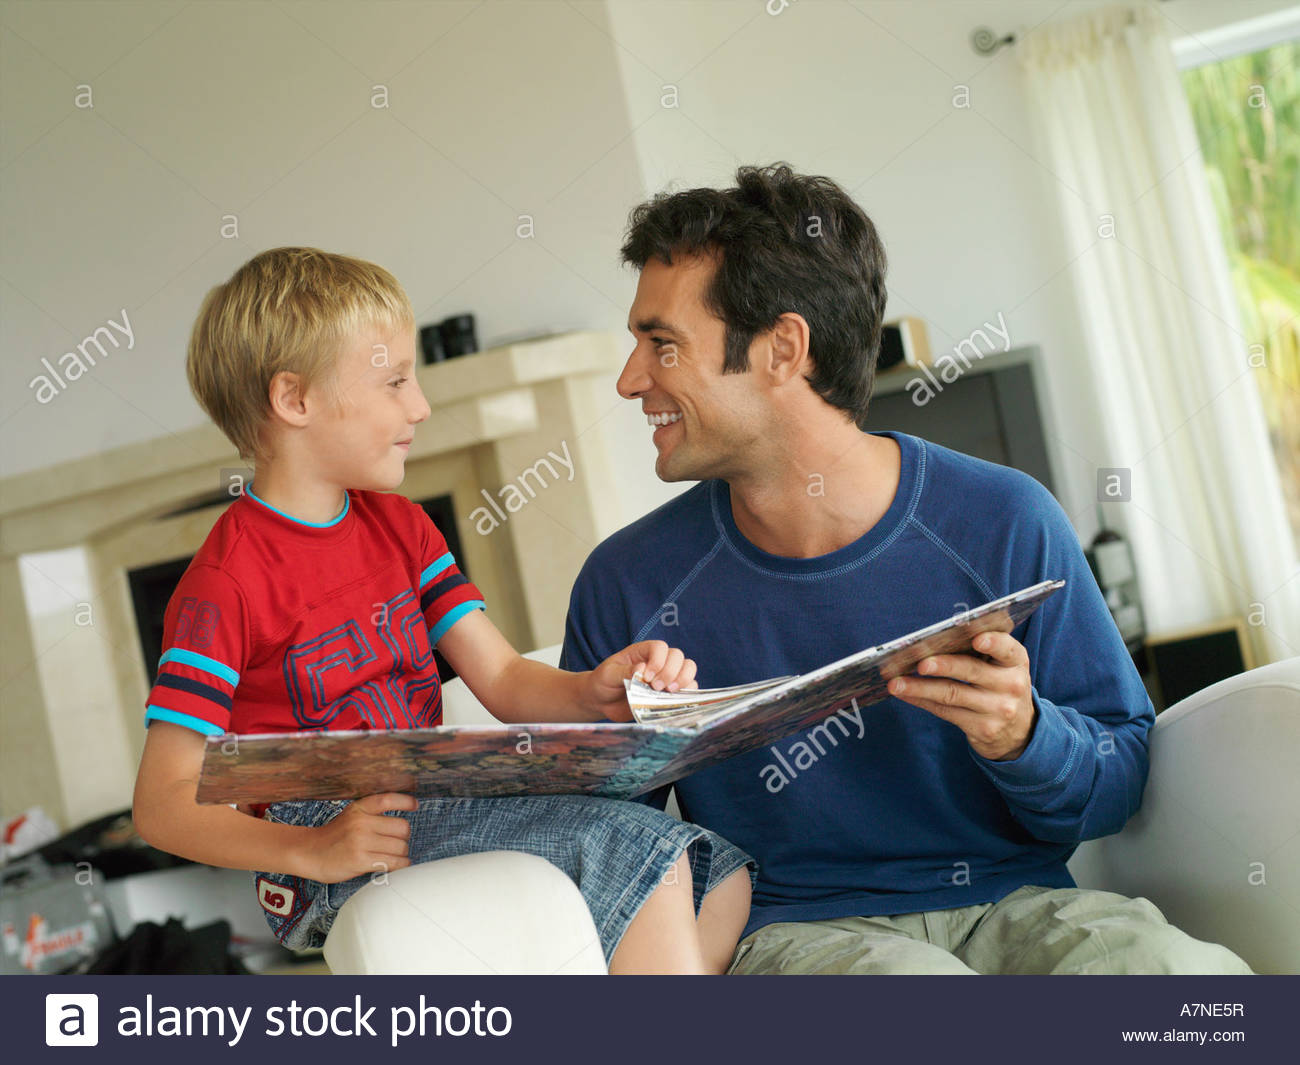 Father and son 5 7 looking at photo album at home sitting in chair face to face smiling tilt - Stock Image